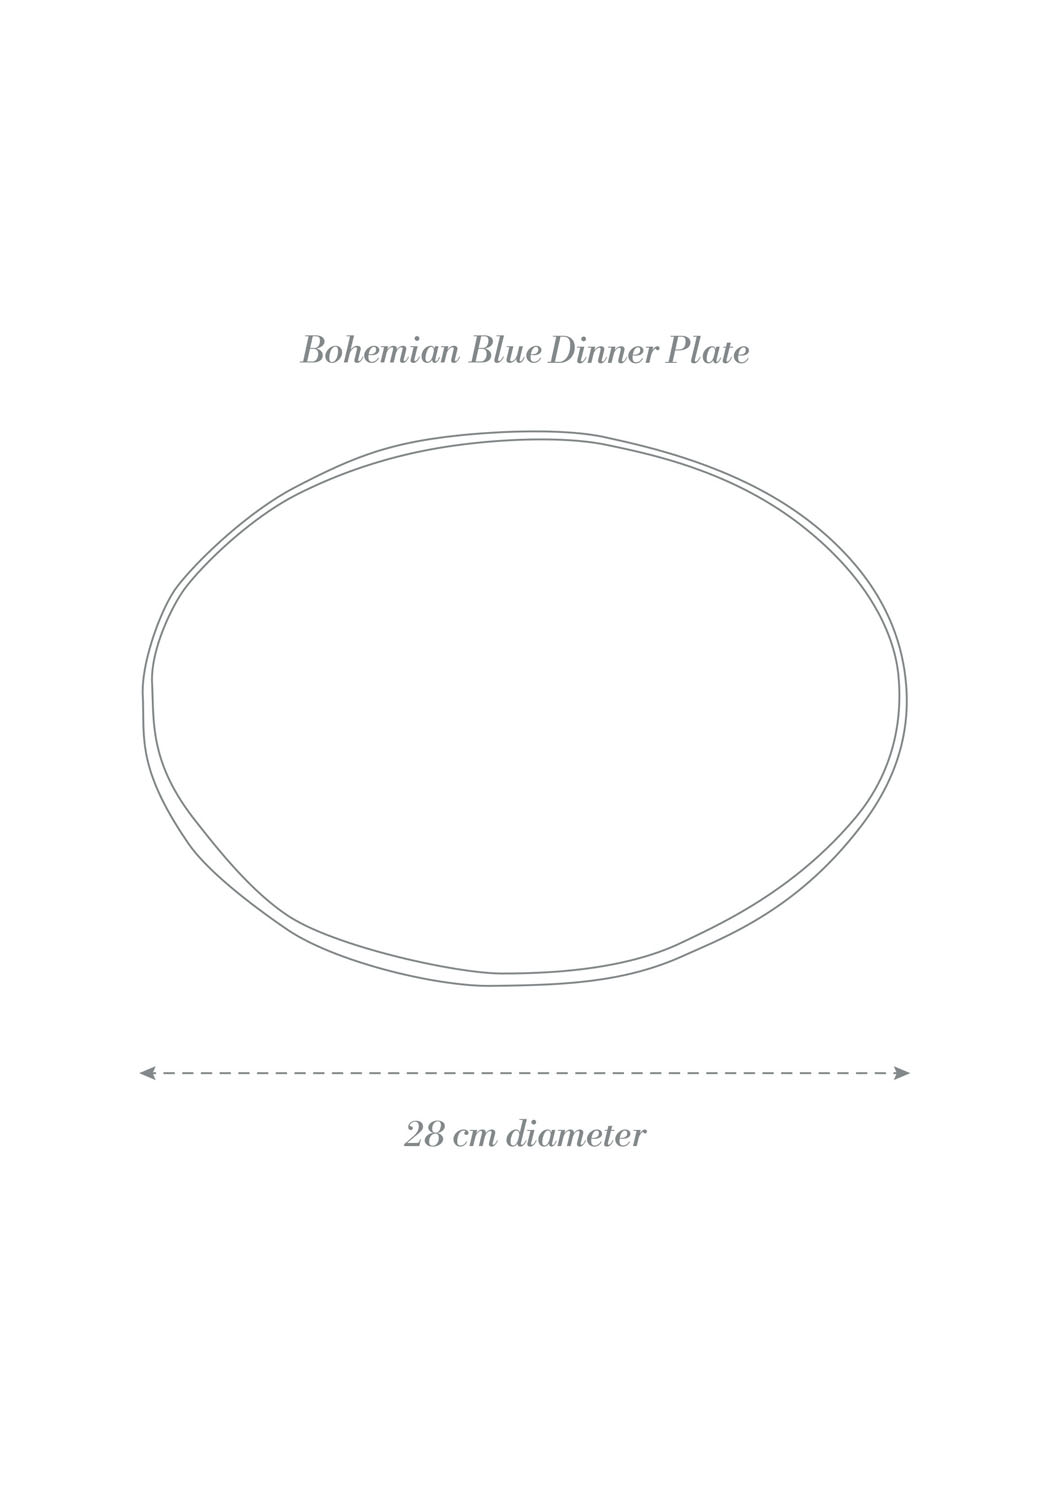 Bohemian Blue Dinner Plate Product Diagram